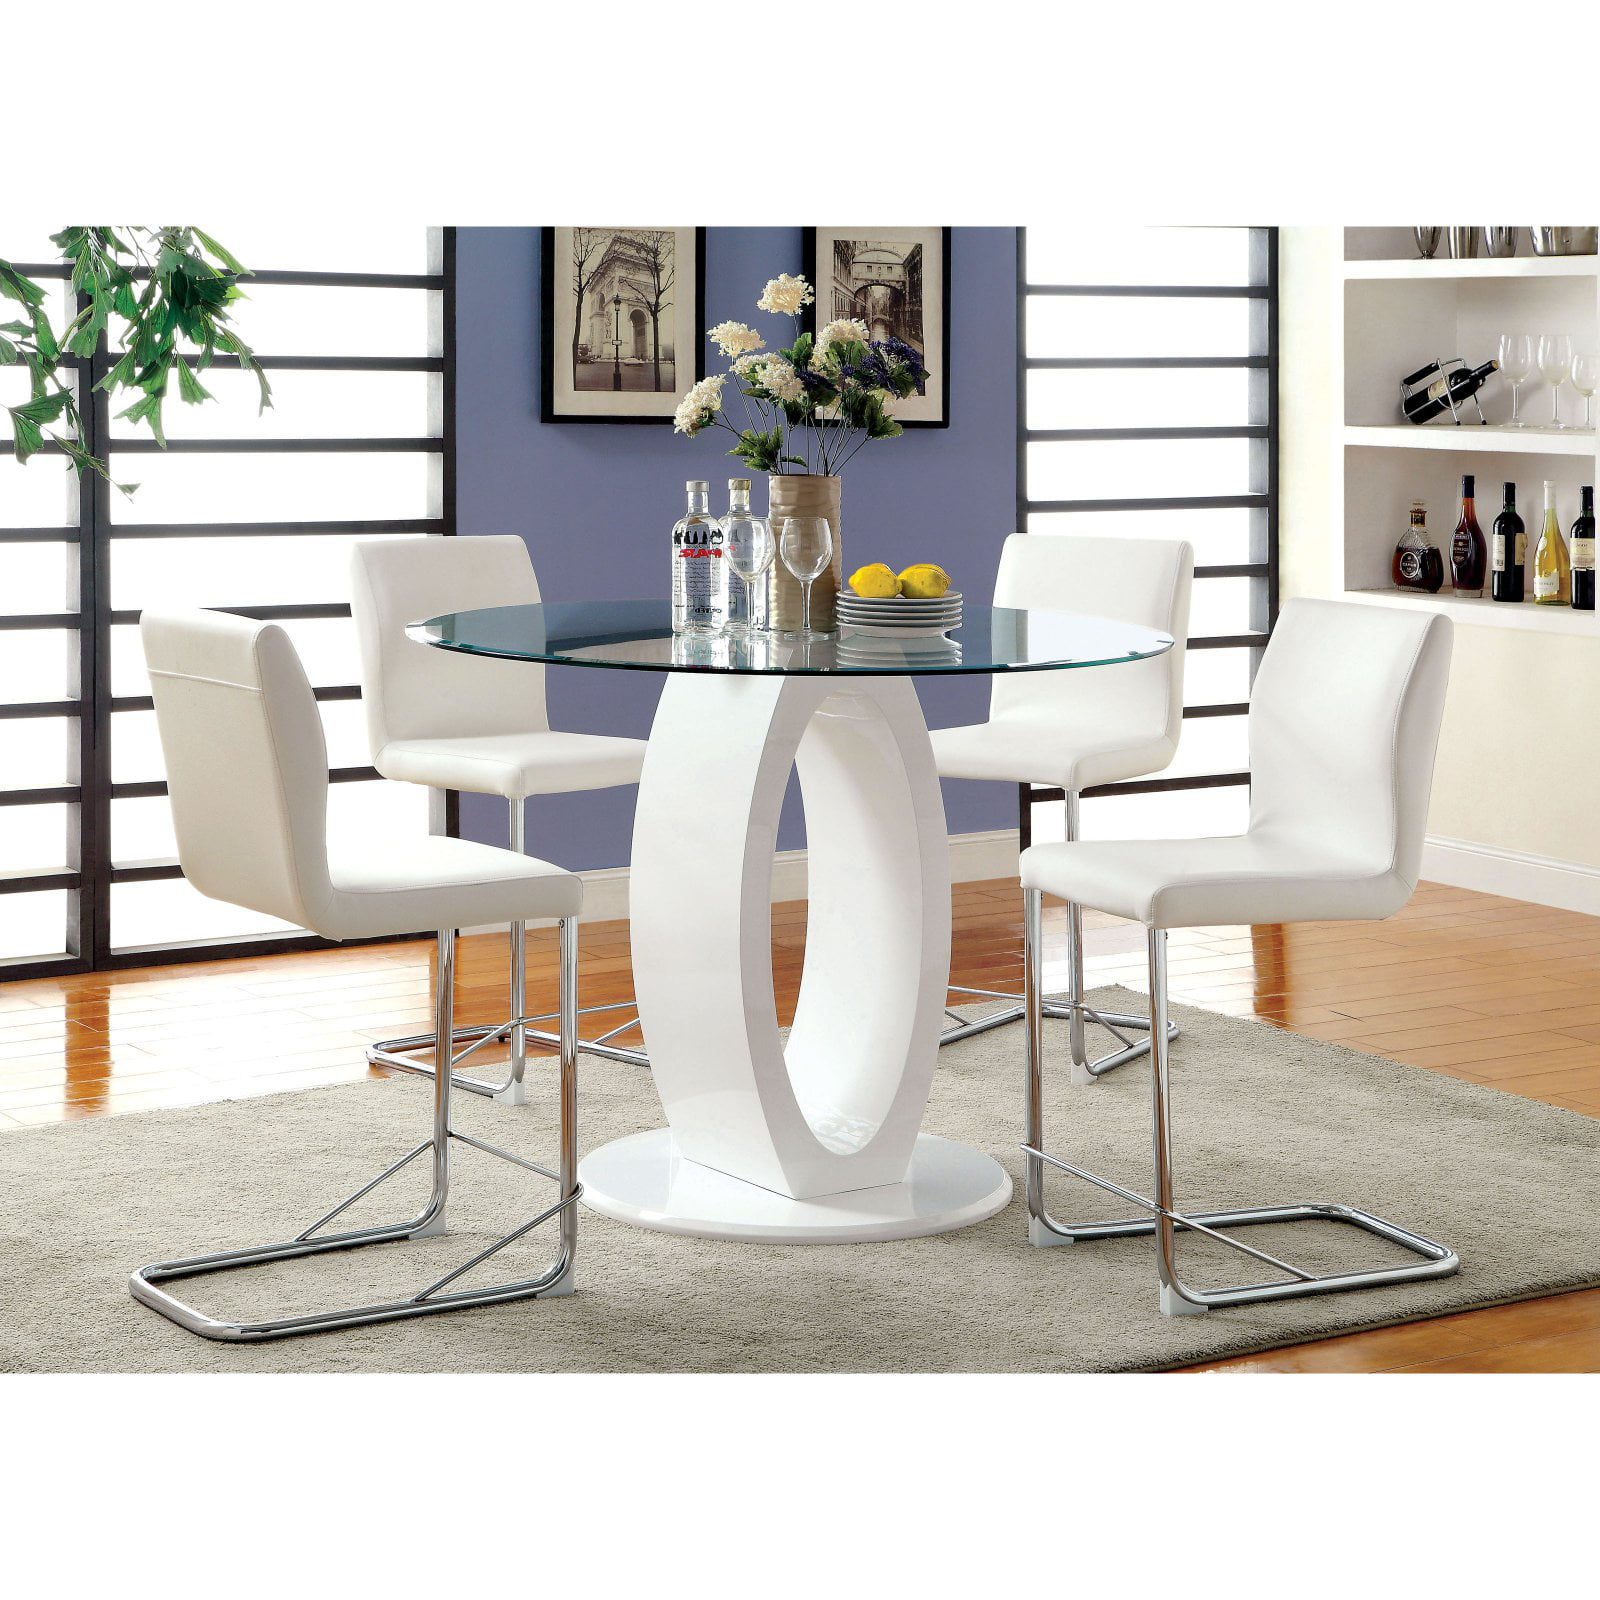 Furniture Of America Damore Contemporary Counter Height High Gloss Round Dining Table Walmart Com Walmart Com